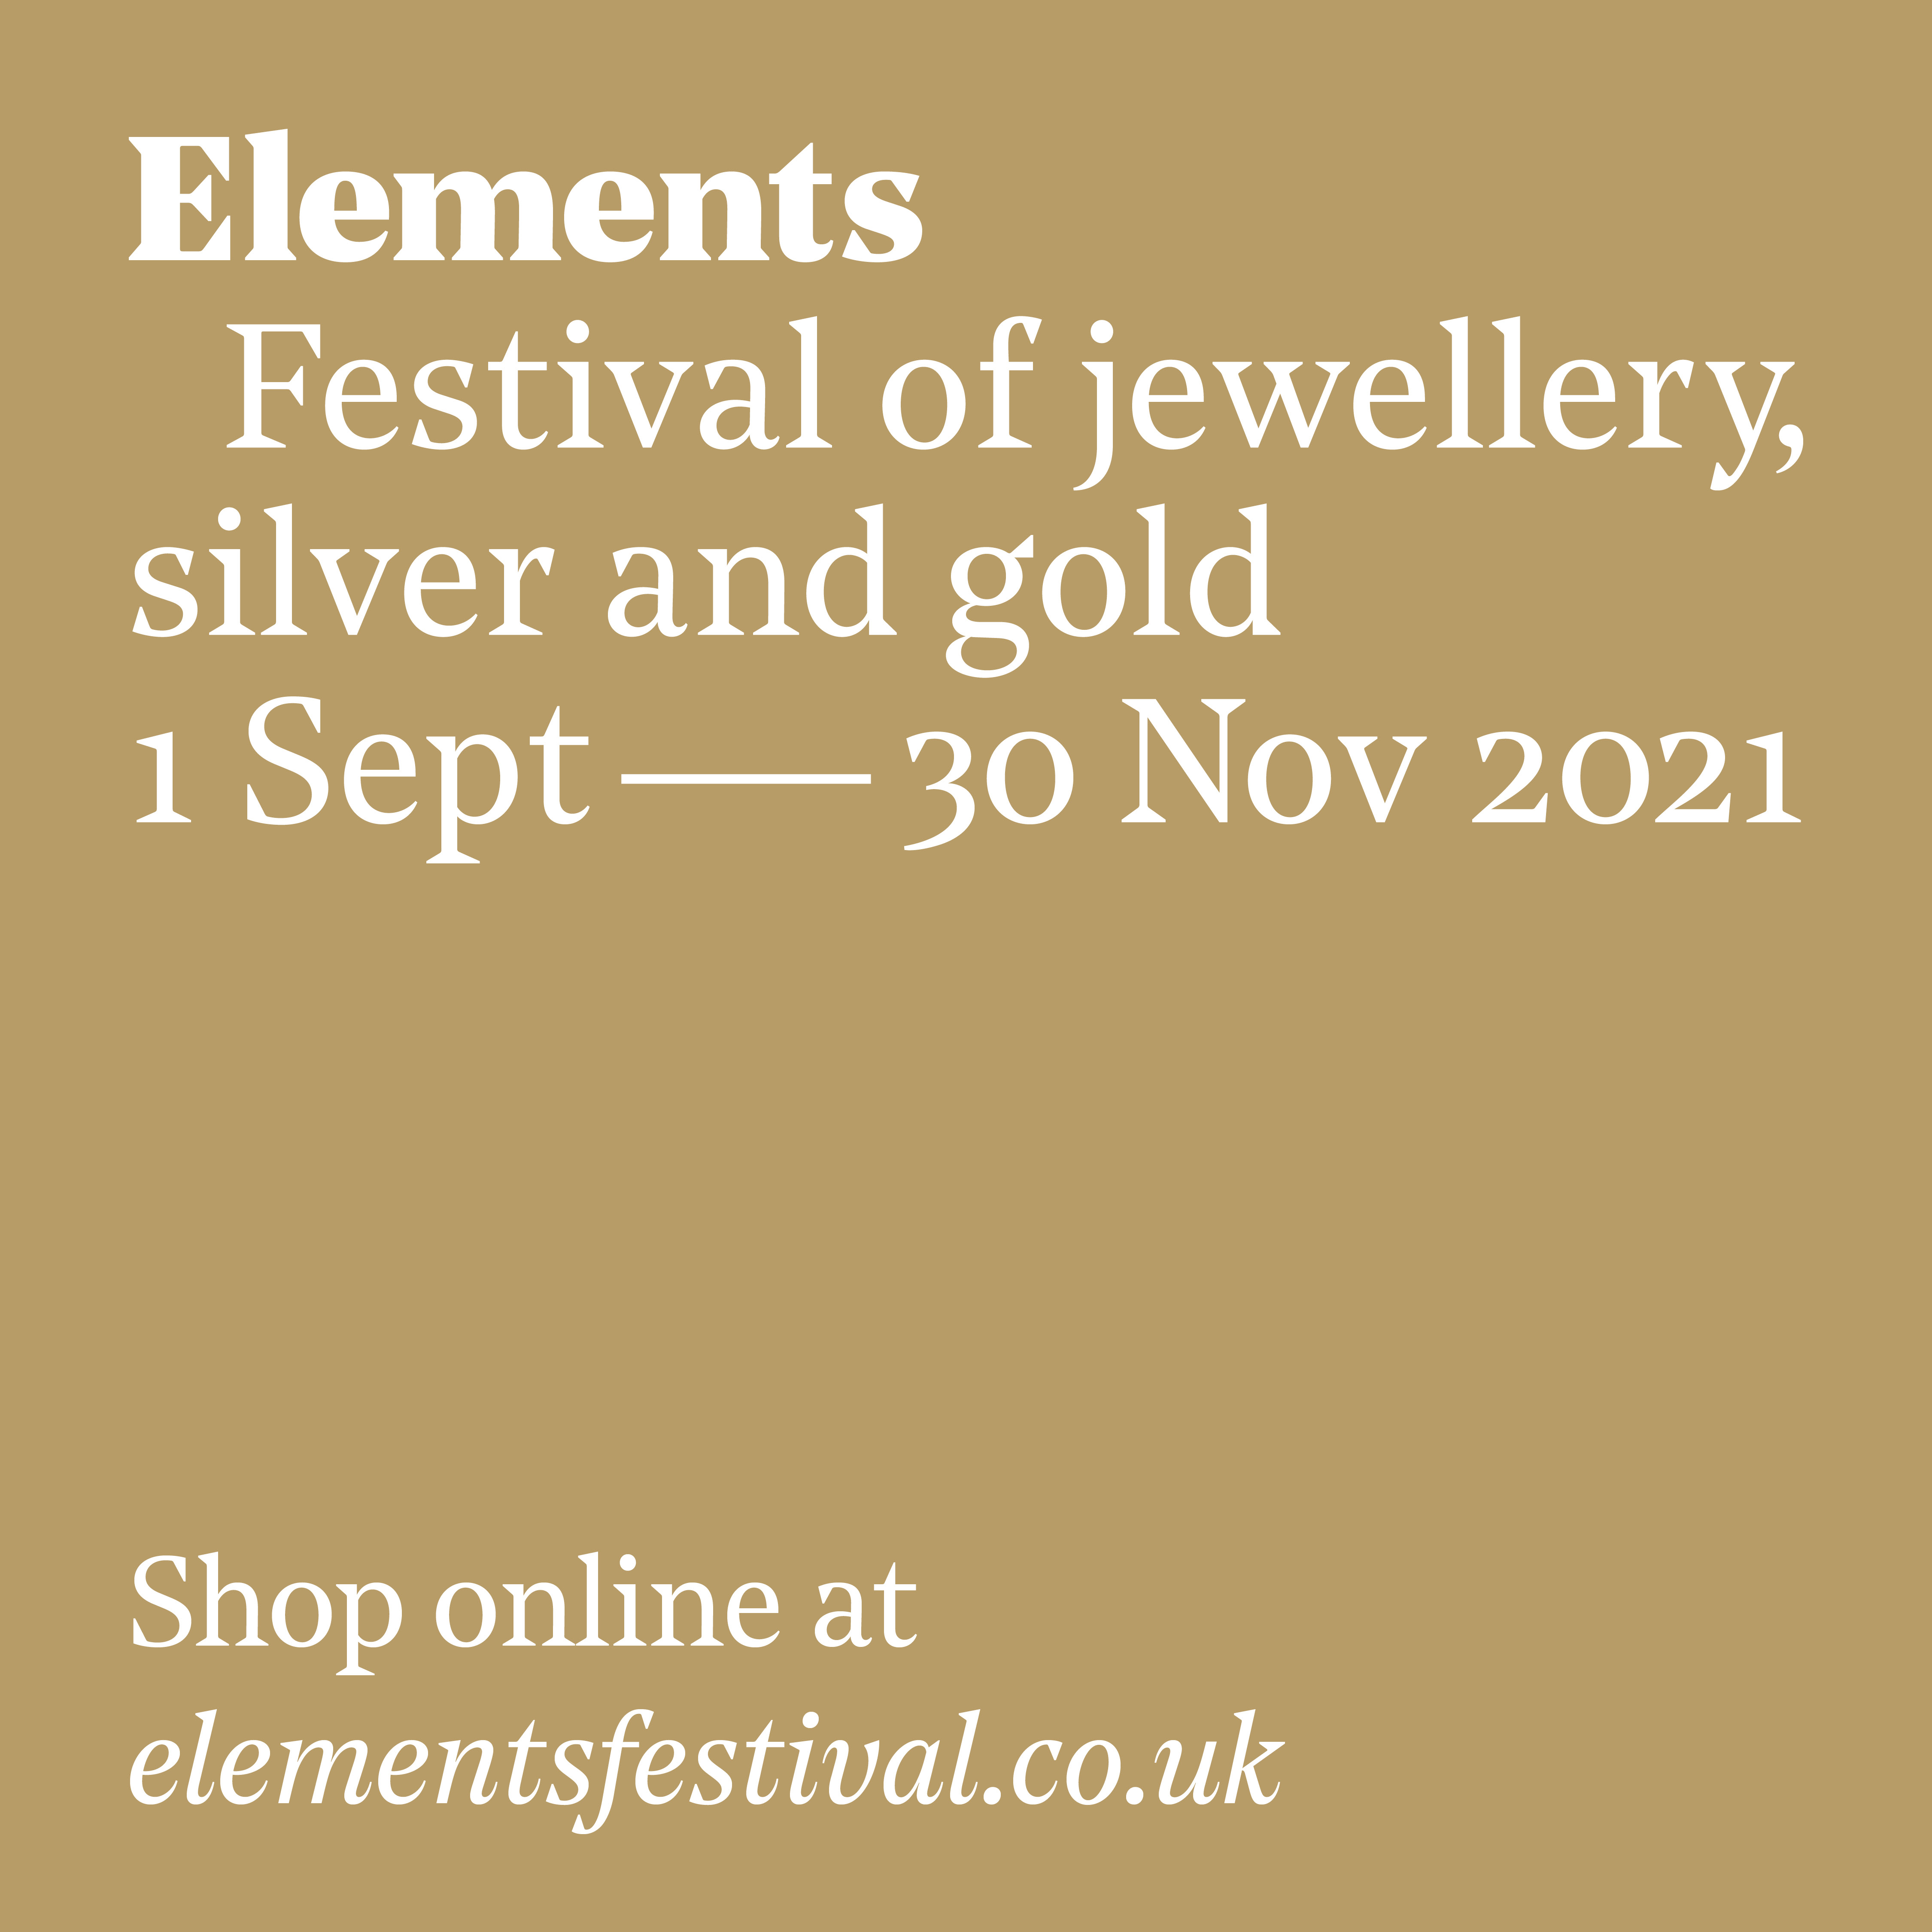 Elements: Festival of Jewellery, Silver and Gold